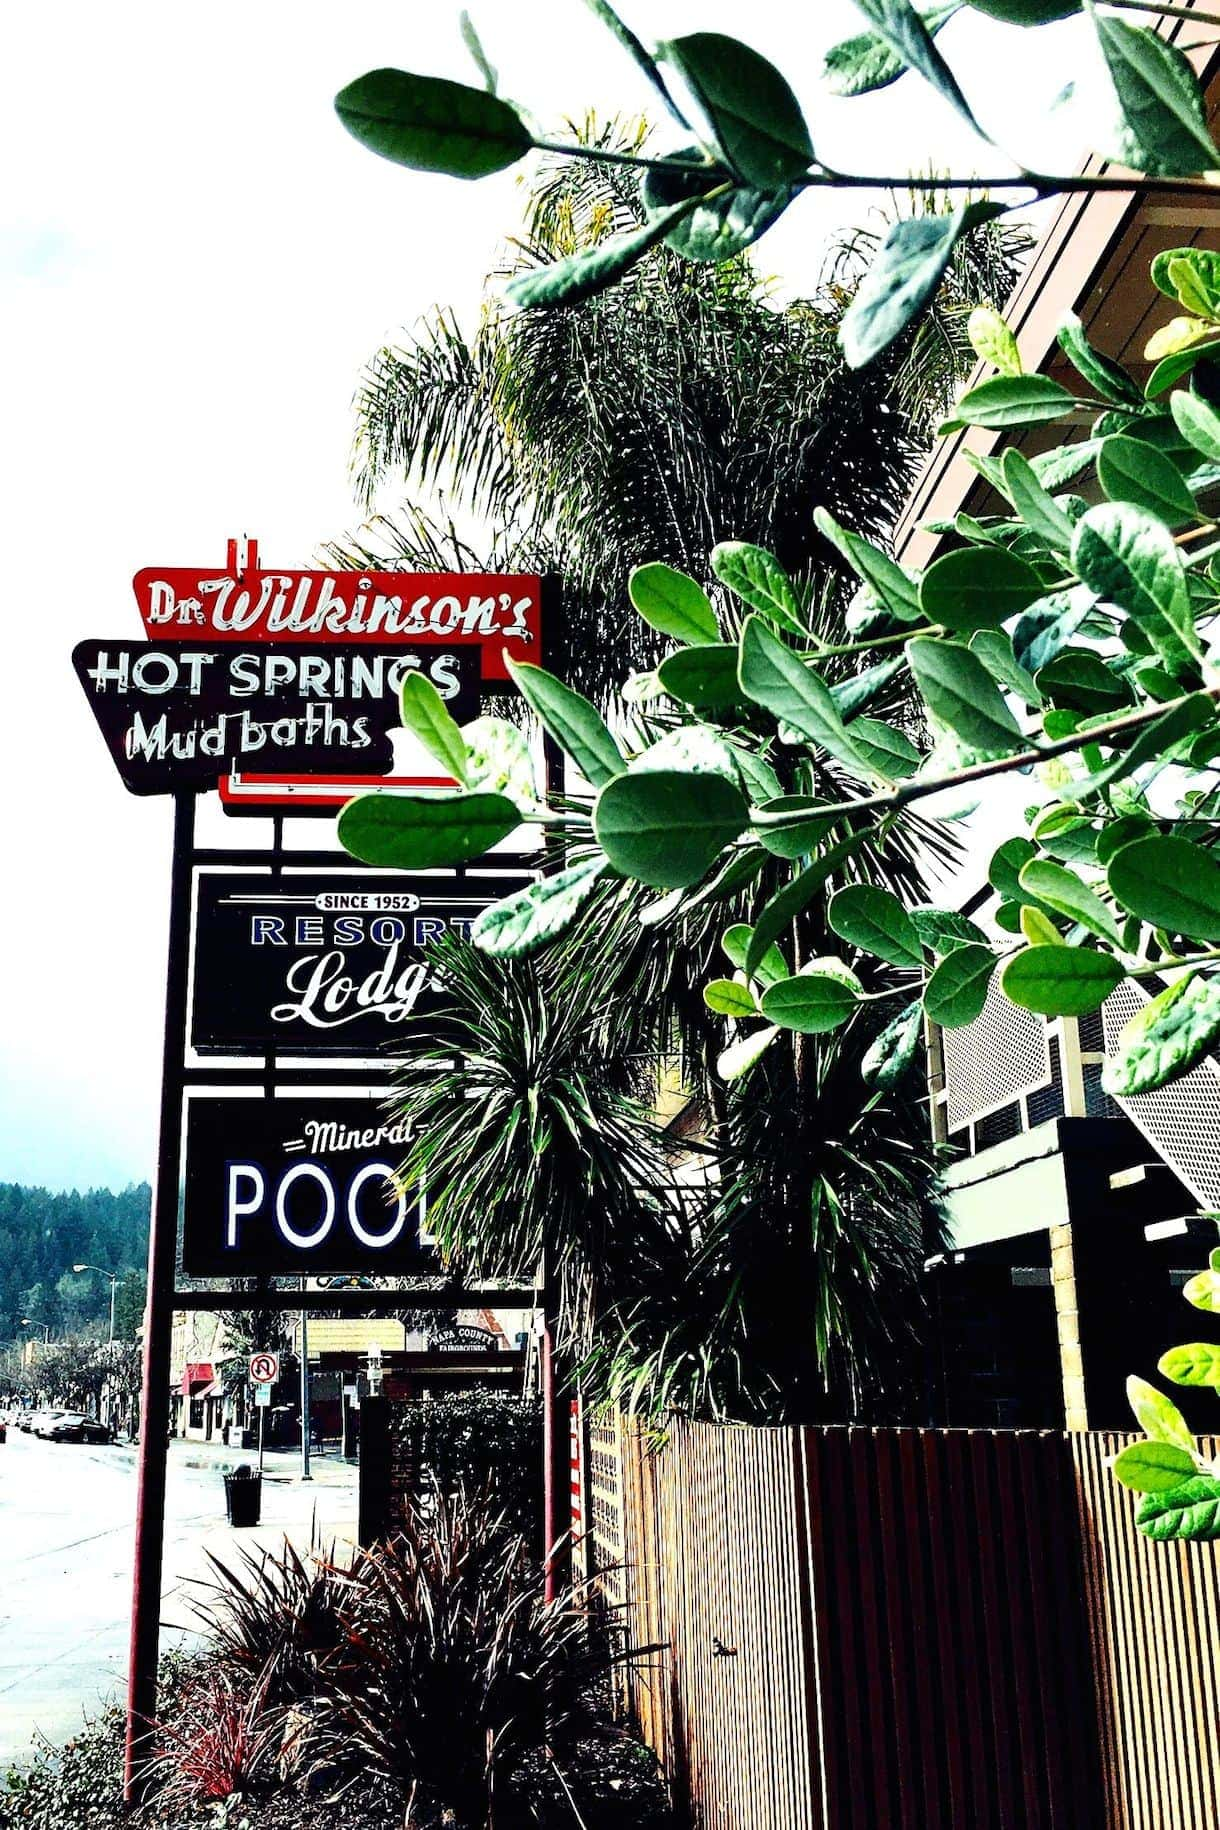 Calistoga Hot Springs & Mud Baths